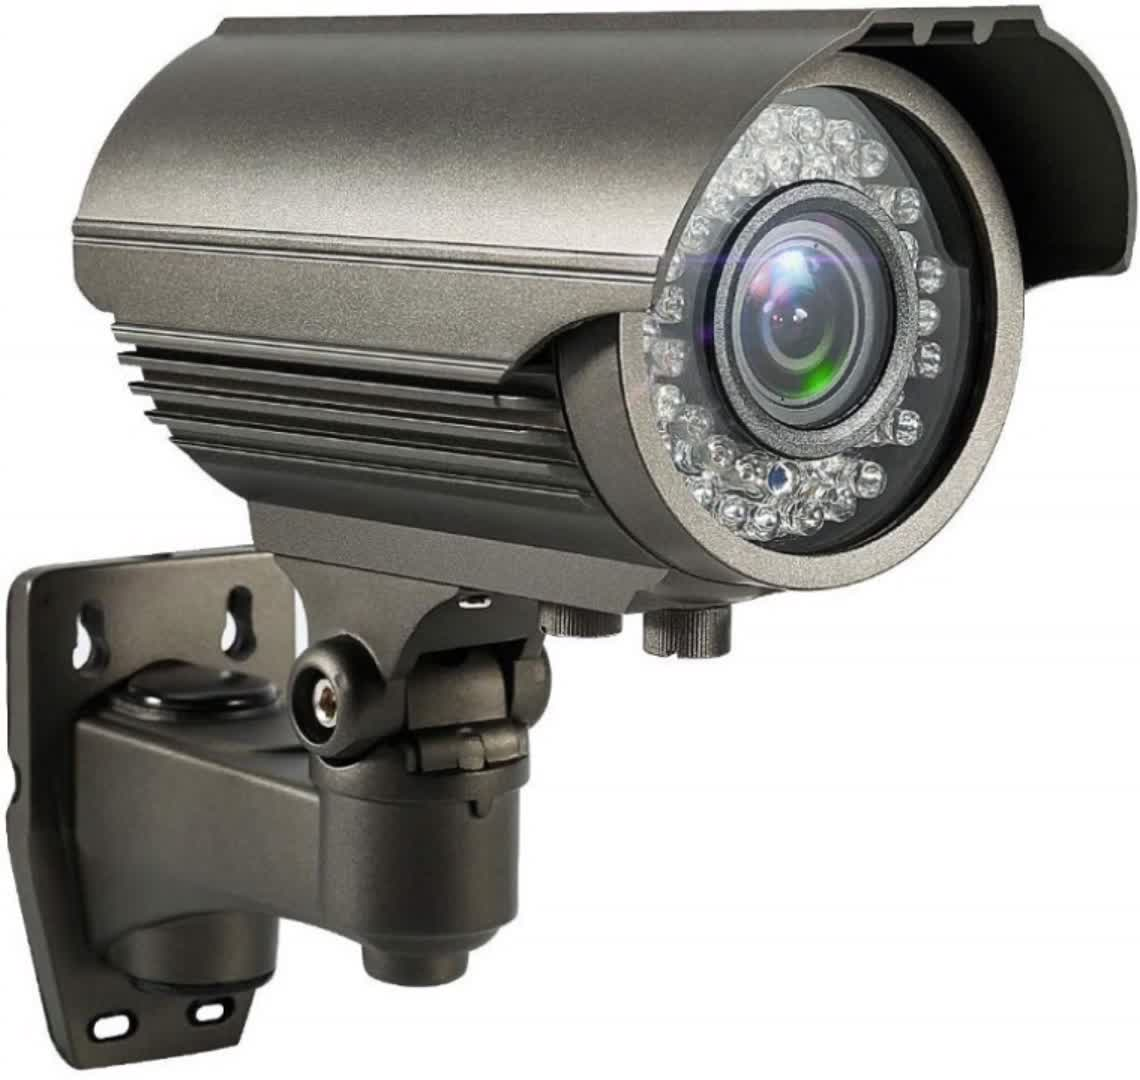 CrazyFire HD SDI 1080P Video Security Weather-Proof IR LED Night Vision Bullet Motion Detection CCTV Camera